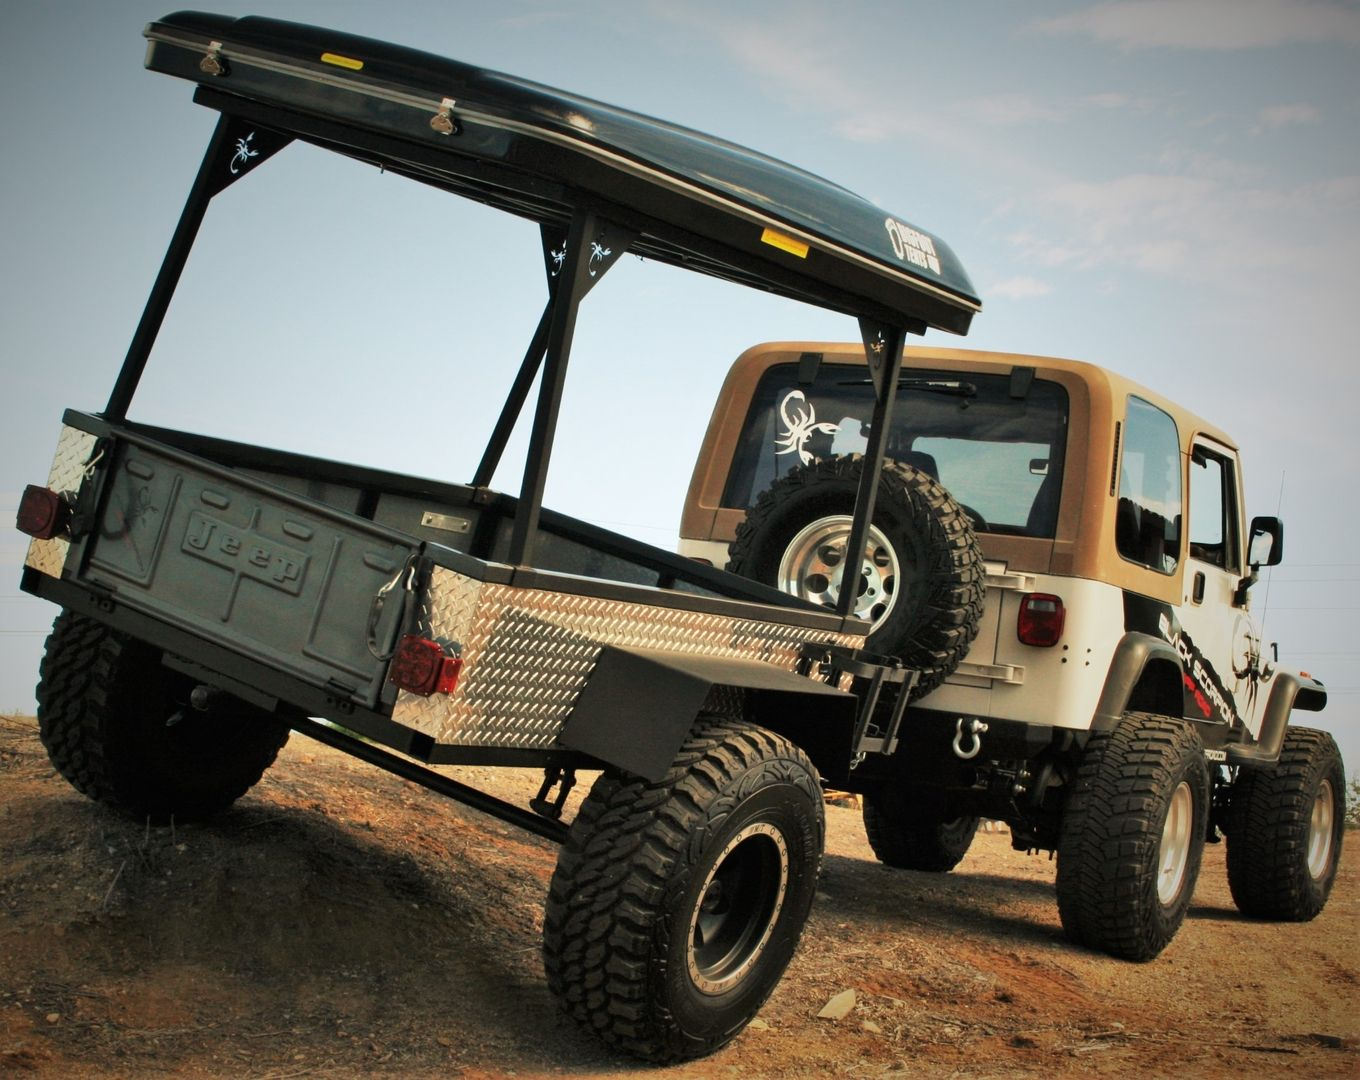 4x4 Off-Road Trailer - Black Scorpion Off-Road / Bigfoot Roof Top Tent & 4x4 Off-Road Trailer - Black Scorpion Off-Road / Bigfoot Roof Top ...